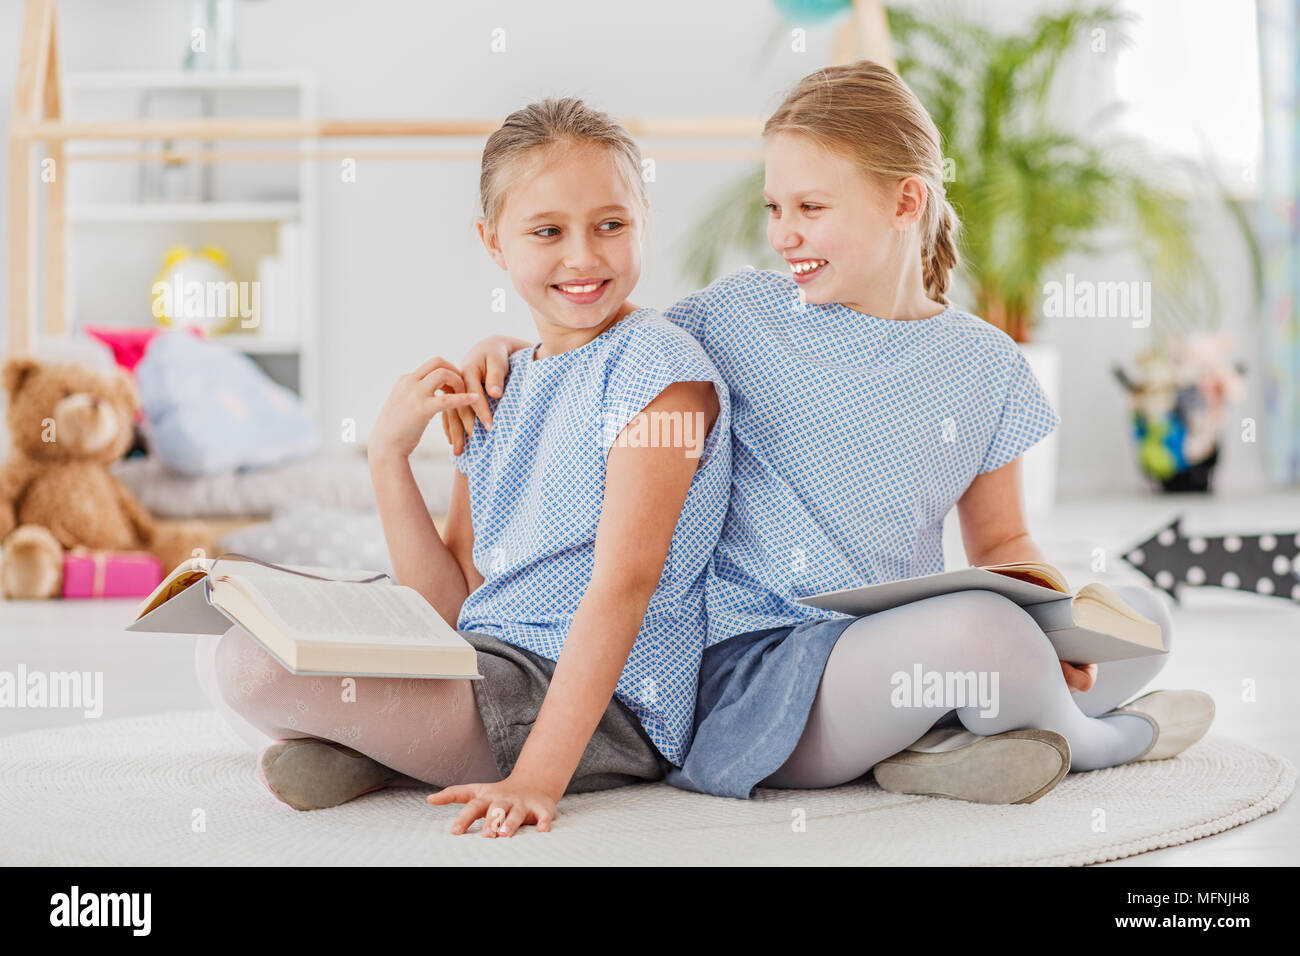 Girl laughing with an arm around her sister's shoulder, sitting on a white rug and reading together - Stock Image